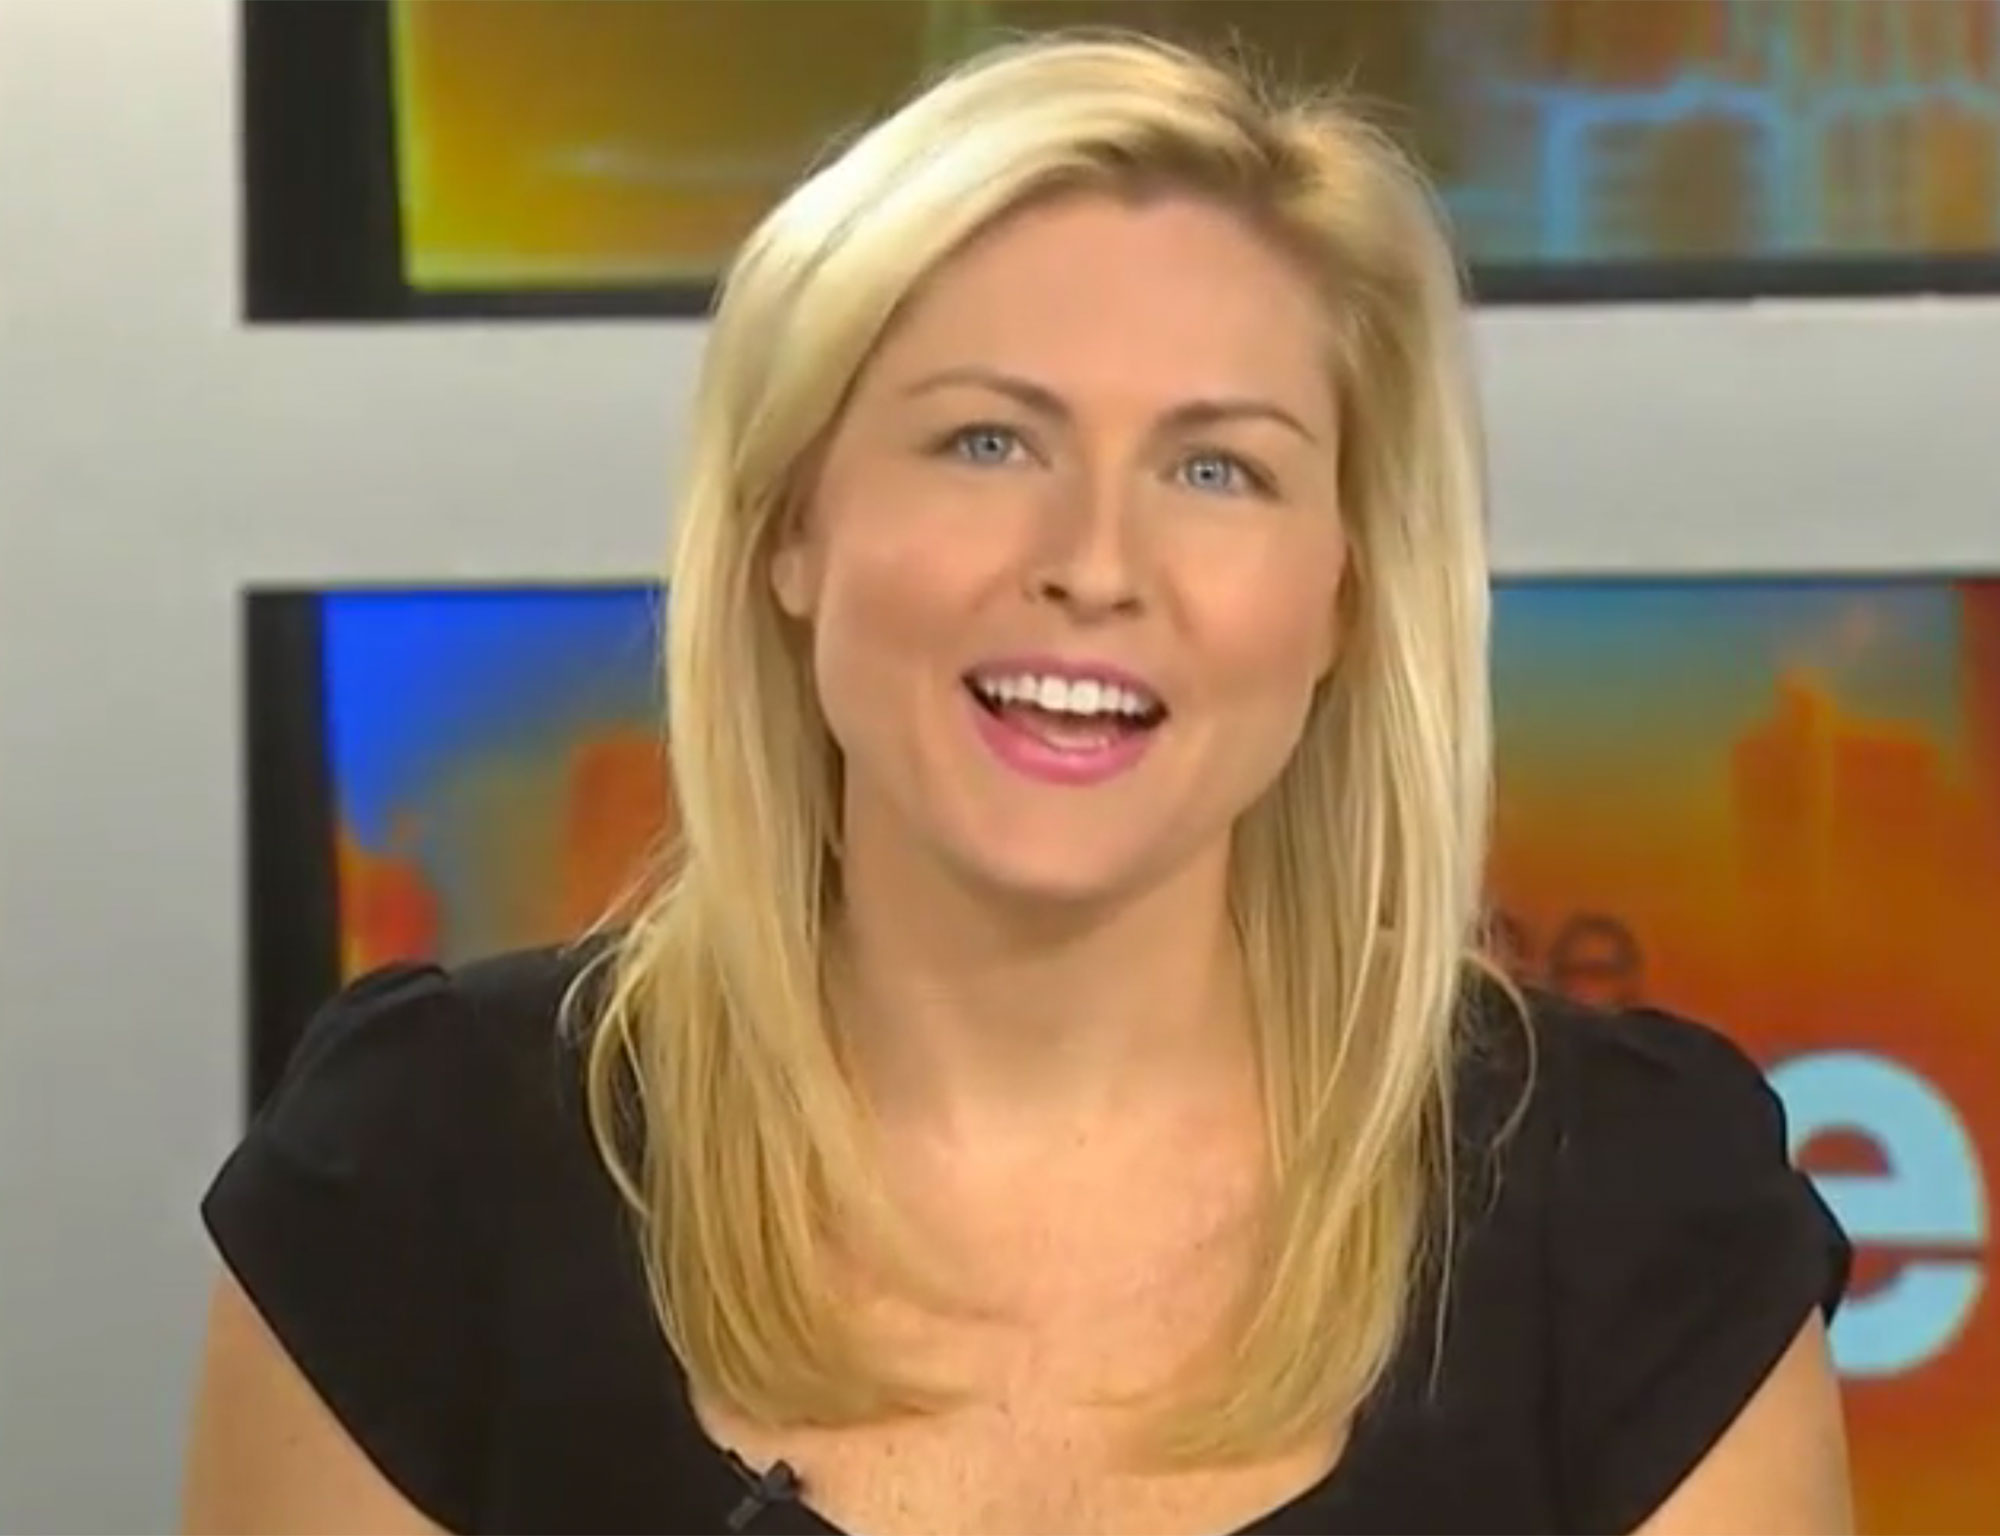 Detroit Station Remembers Meteorologist Who Died by Suicide with Touching Tribute